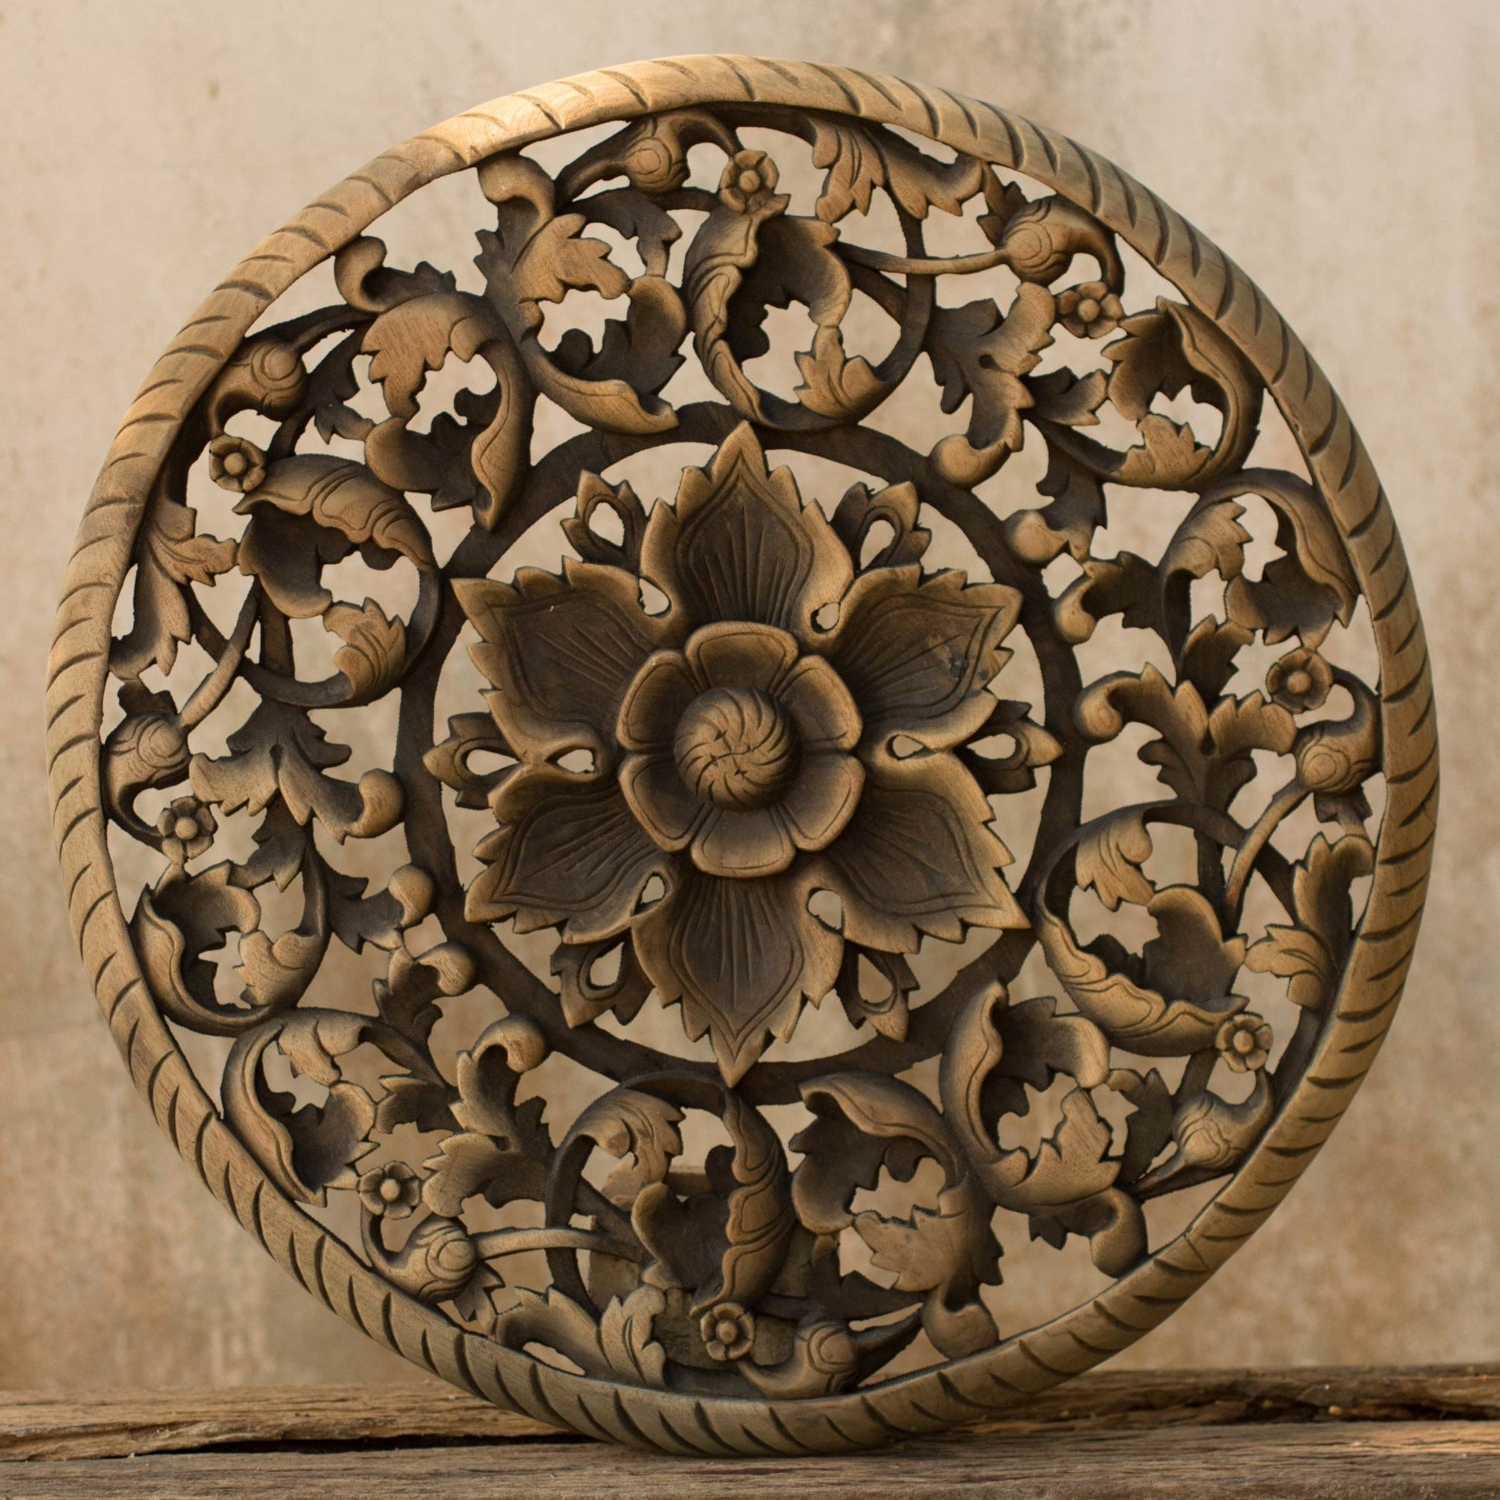 Buy Tree Dimensional Floral Wooden Wall Hanging Online In Fashionable Carved Wood Wall Art (View 3 of 15)